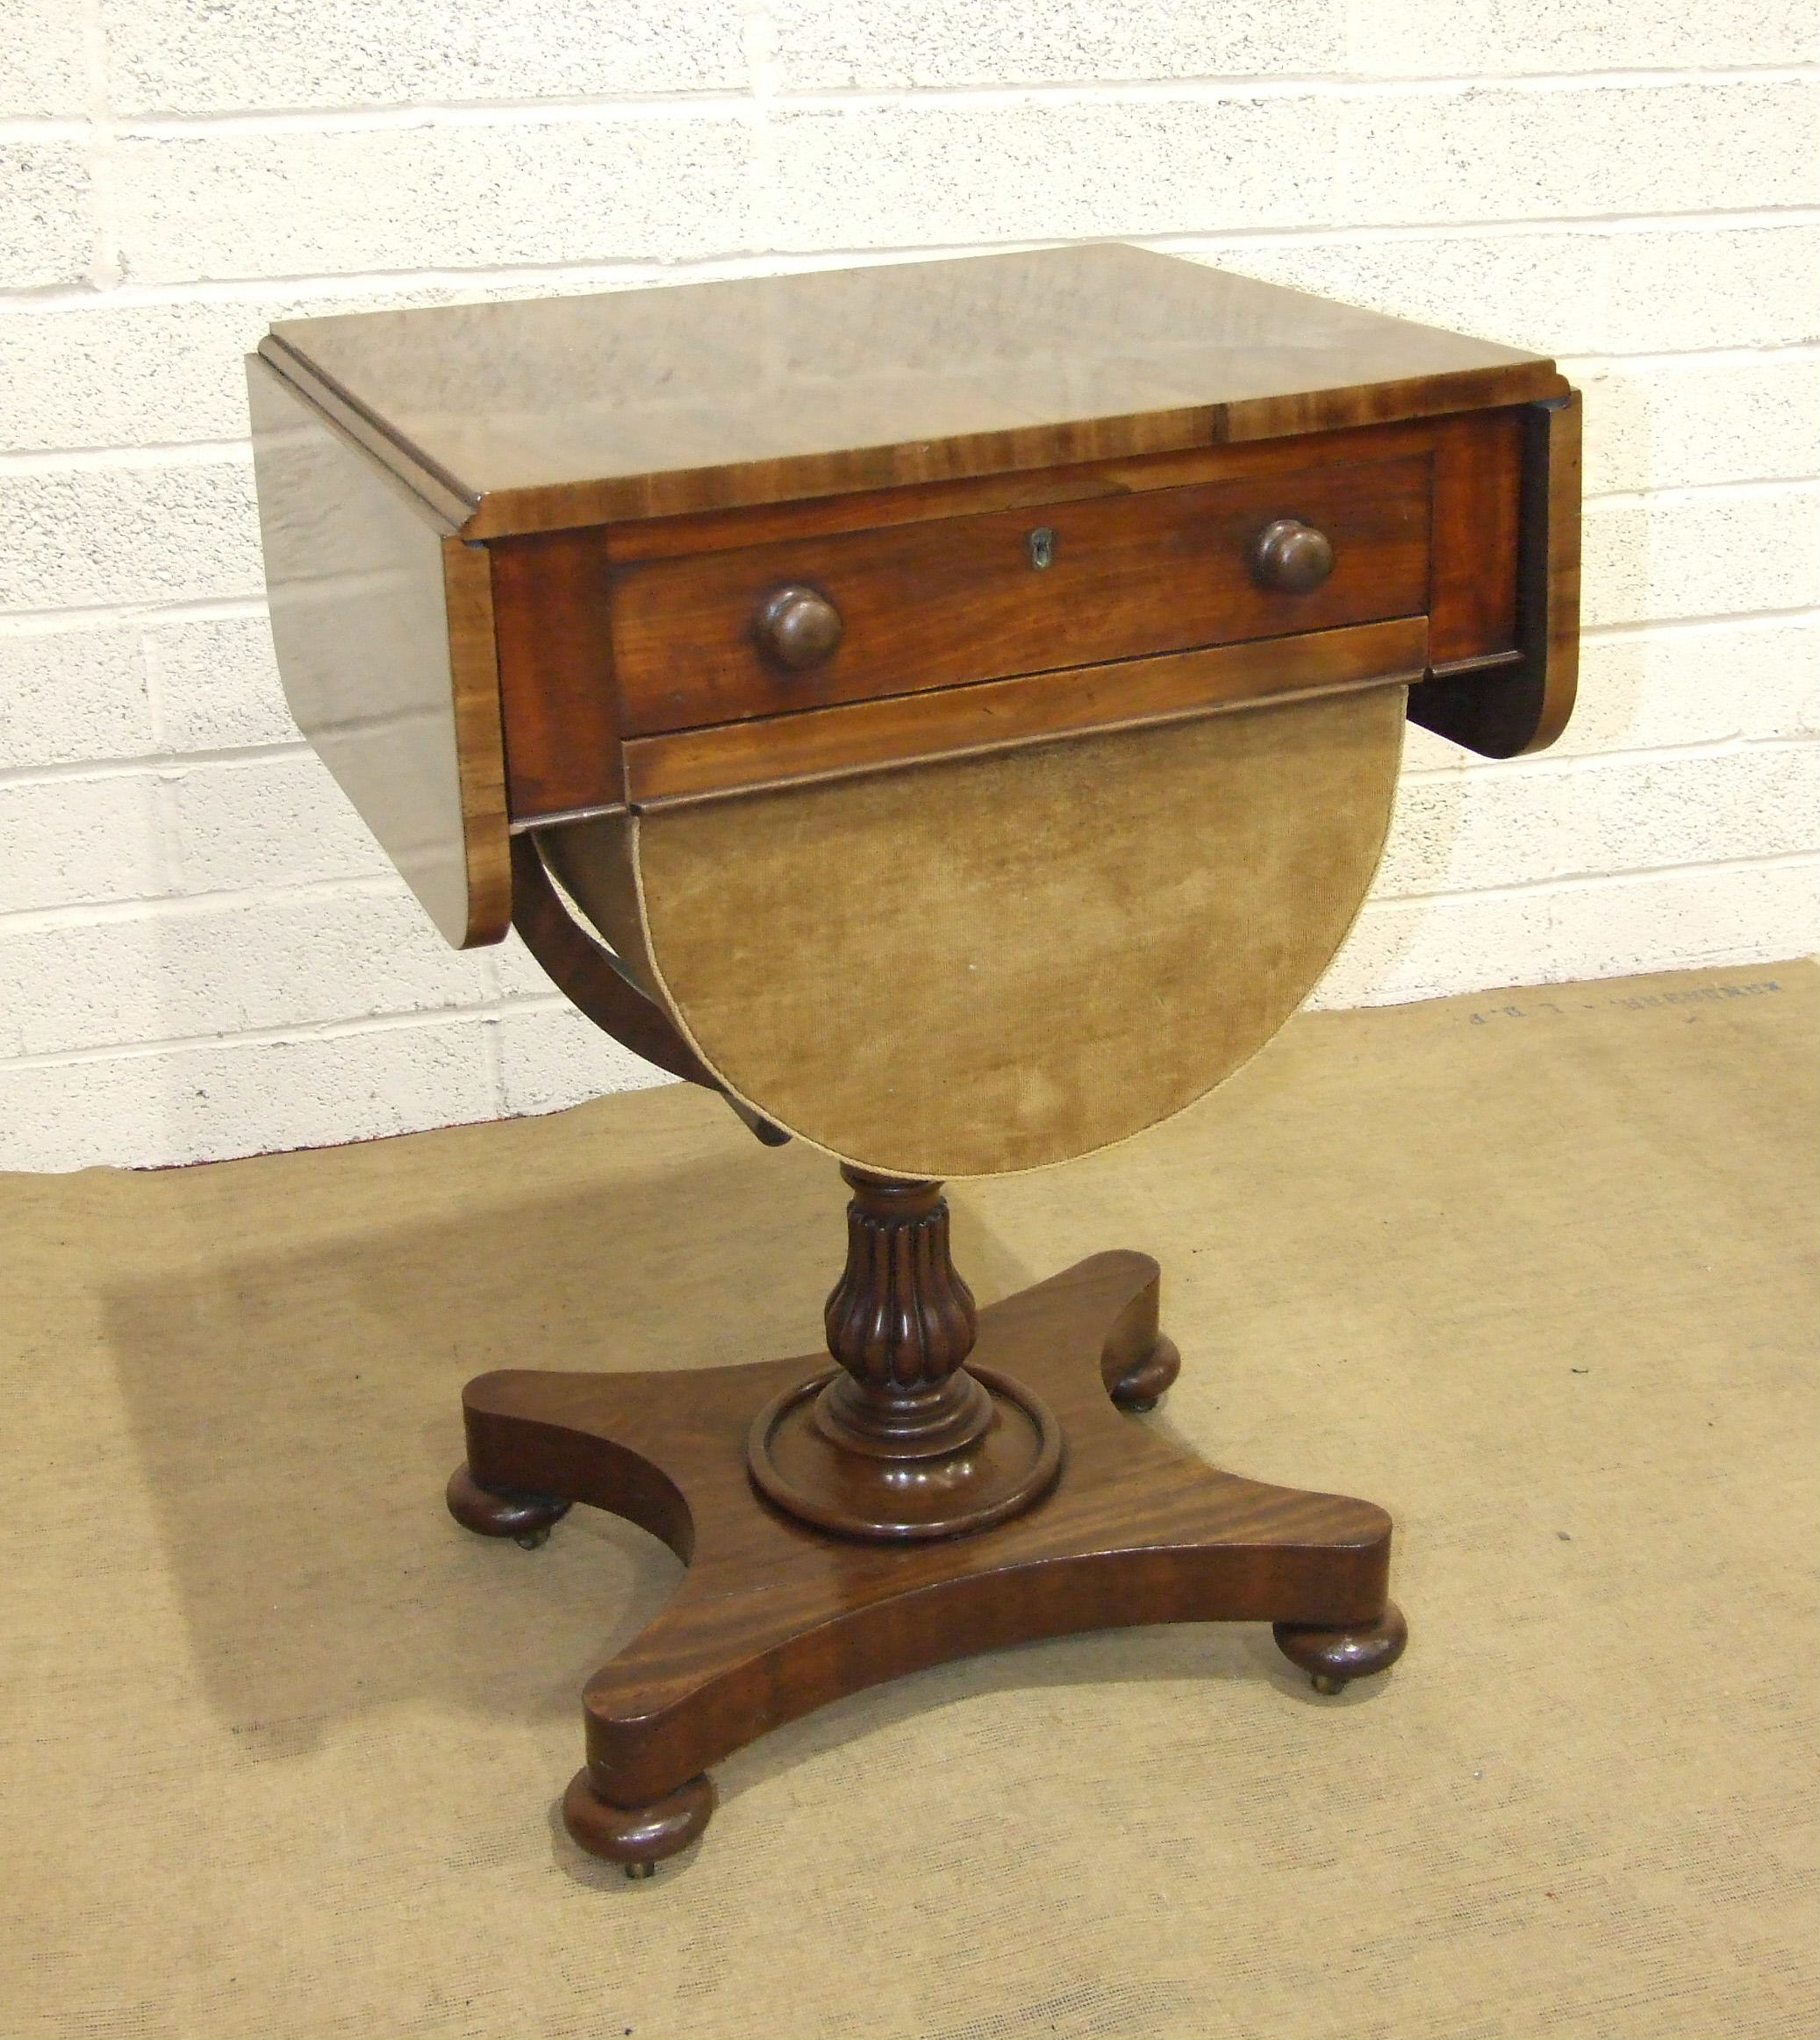 Lot 52 - A William IV mahogany work table, the rectangular top with two drop leaves above a drawer and half-